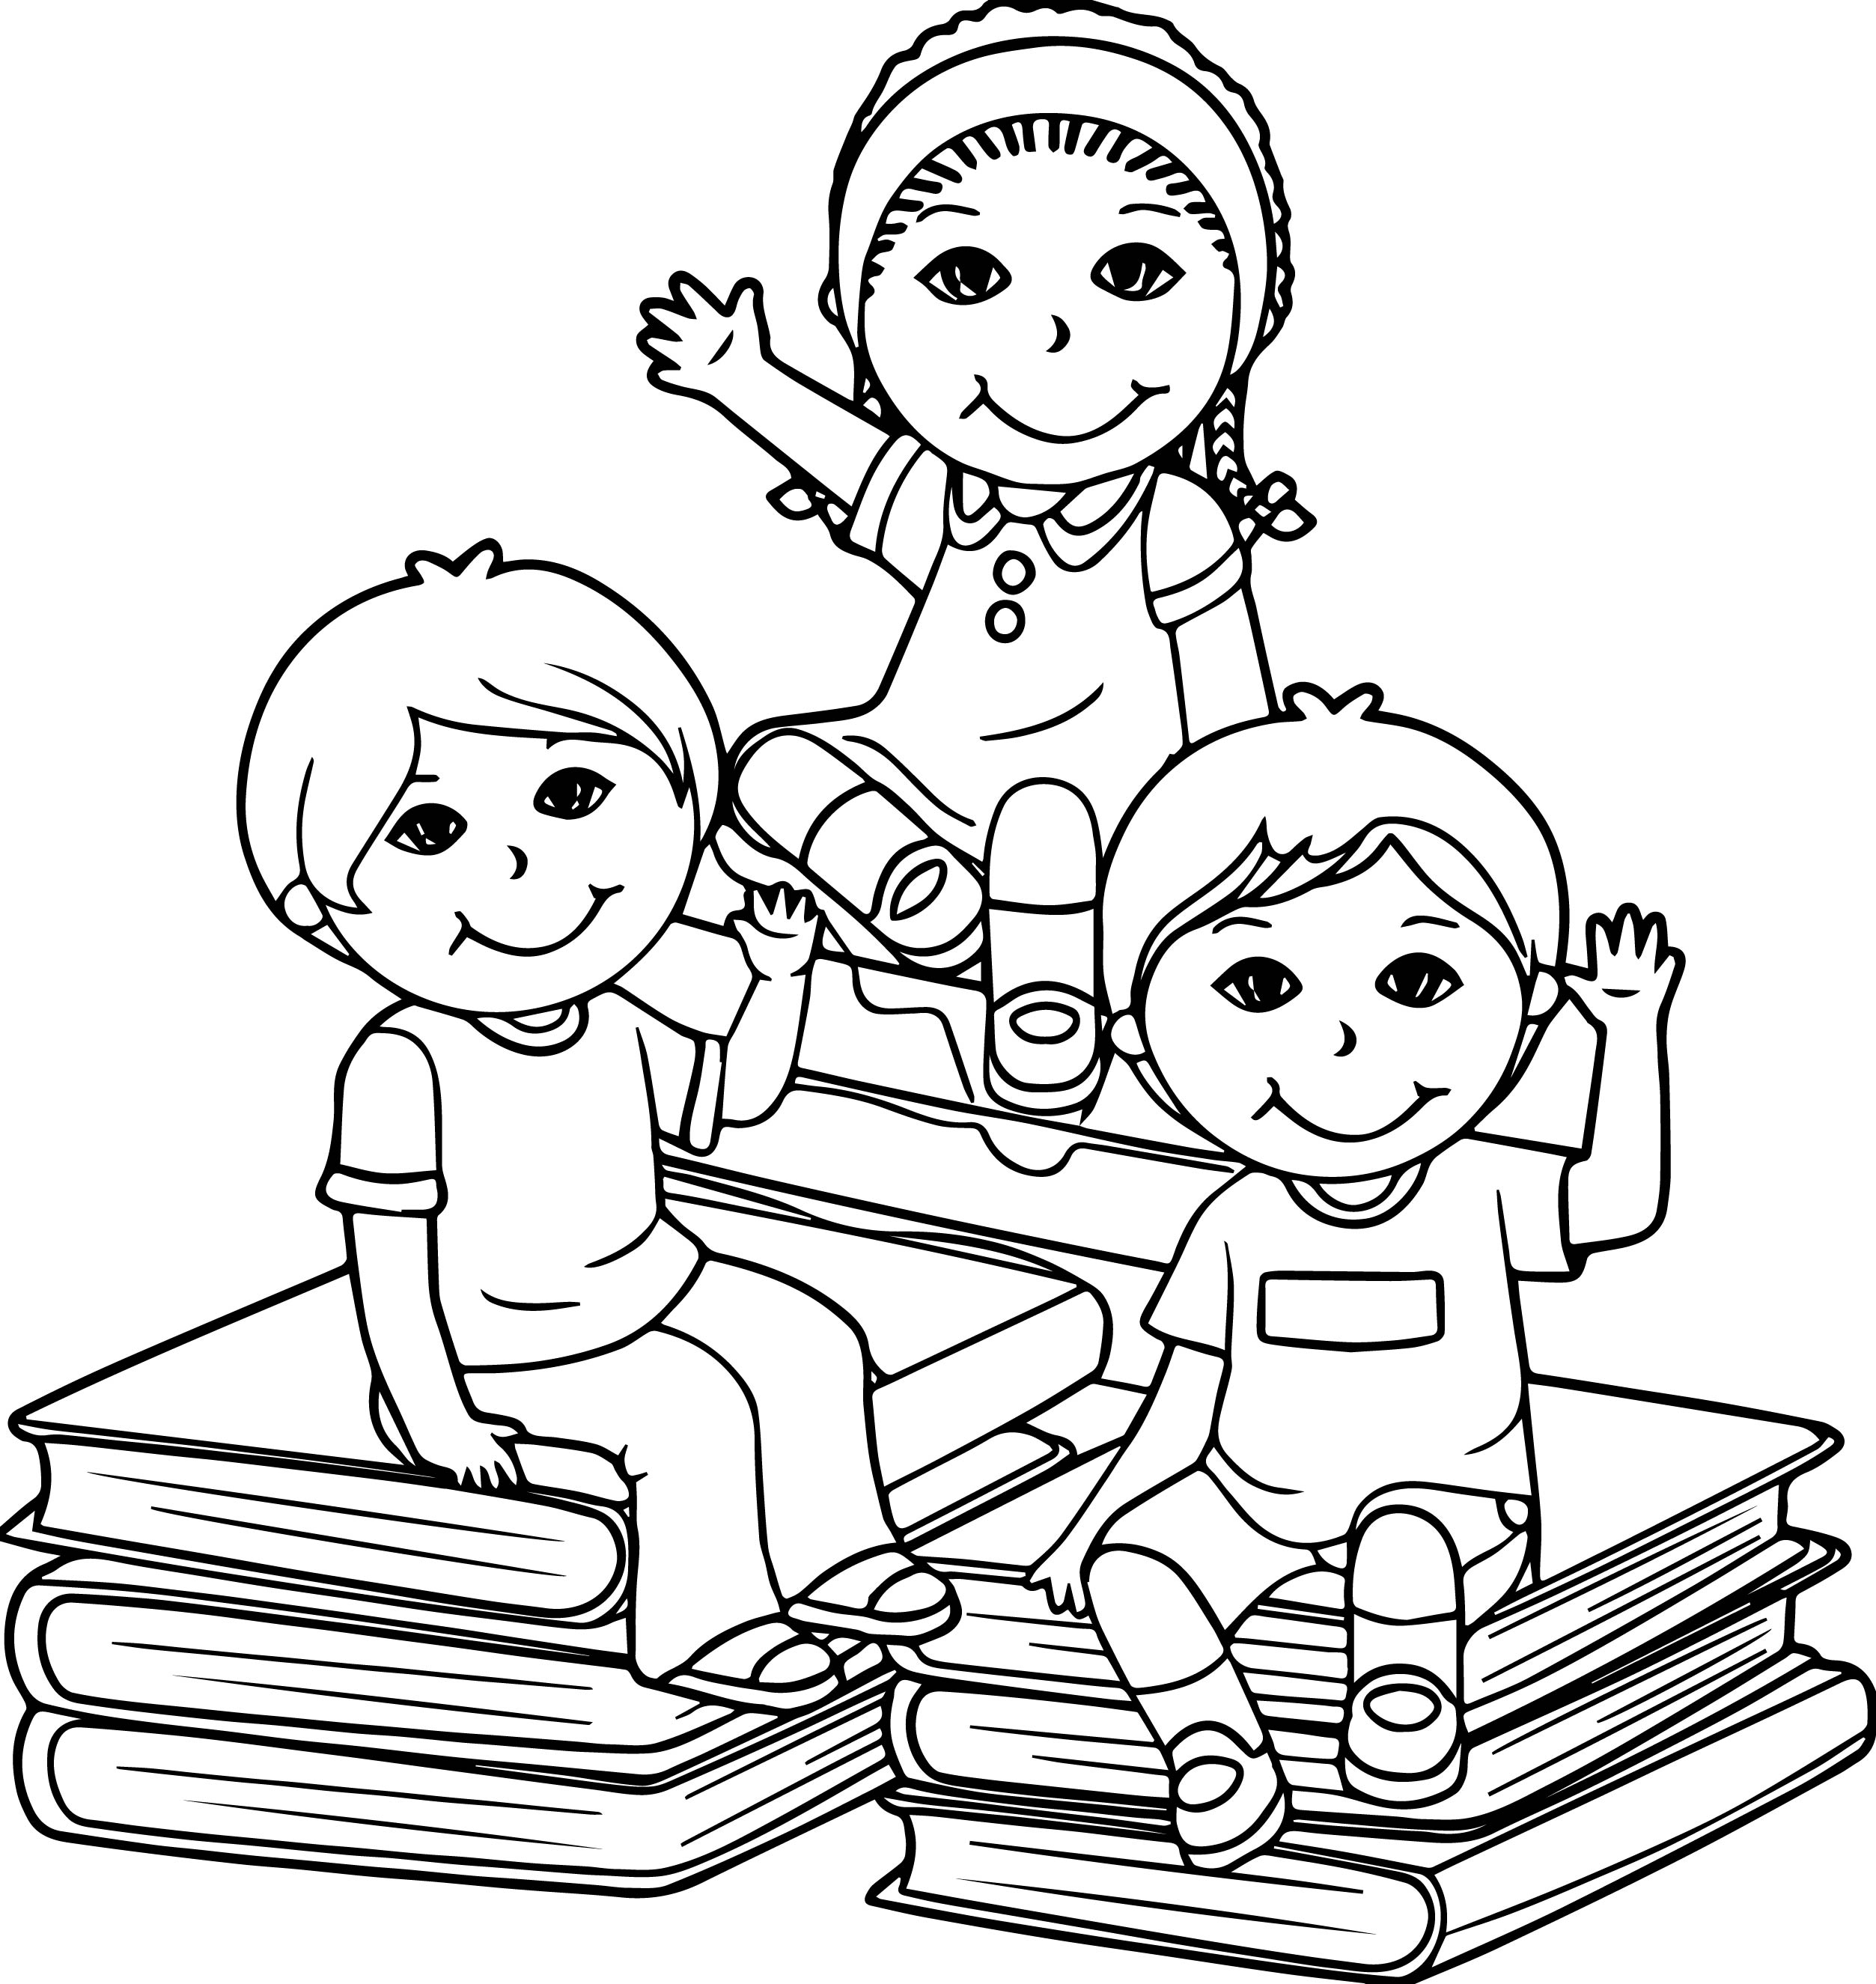 kids coloring pages - sit book children kids coloring page